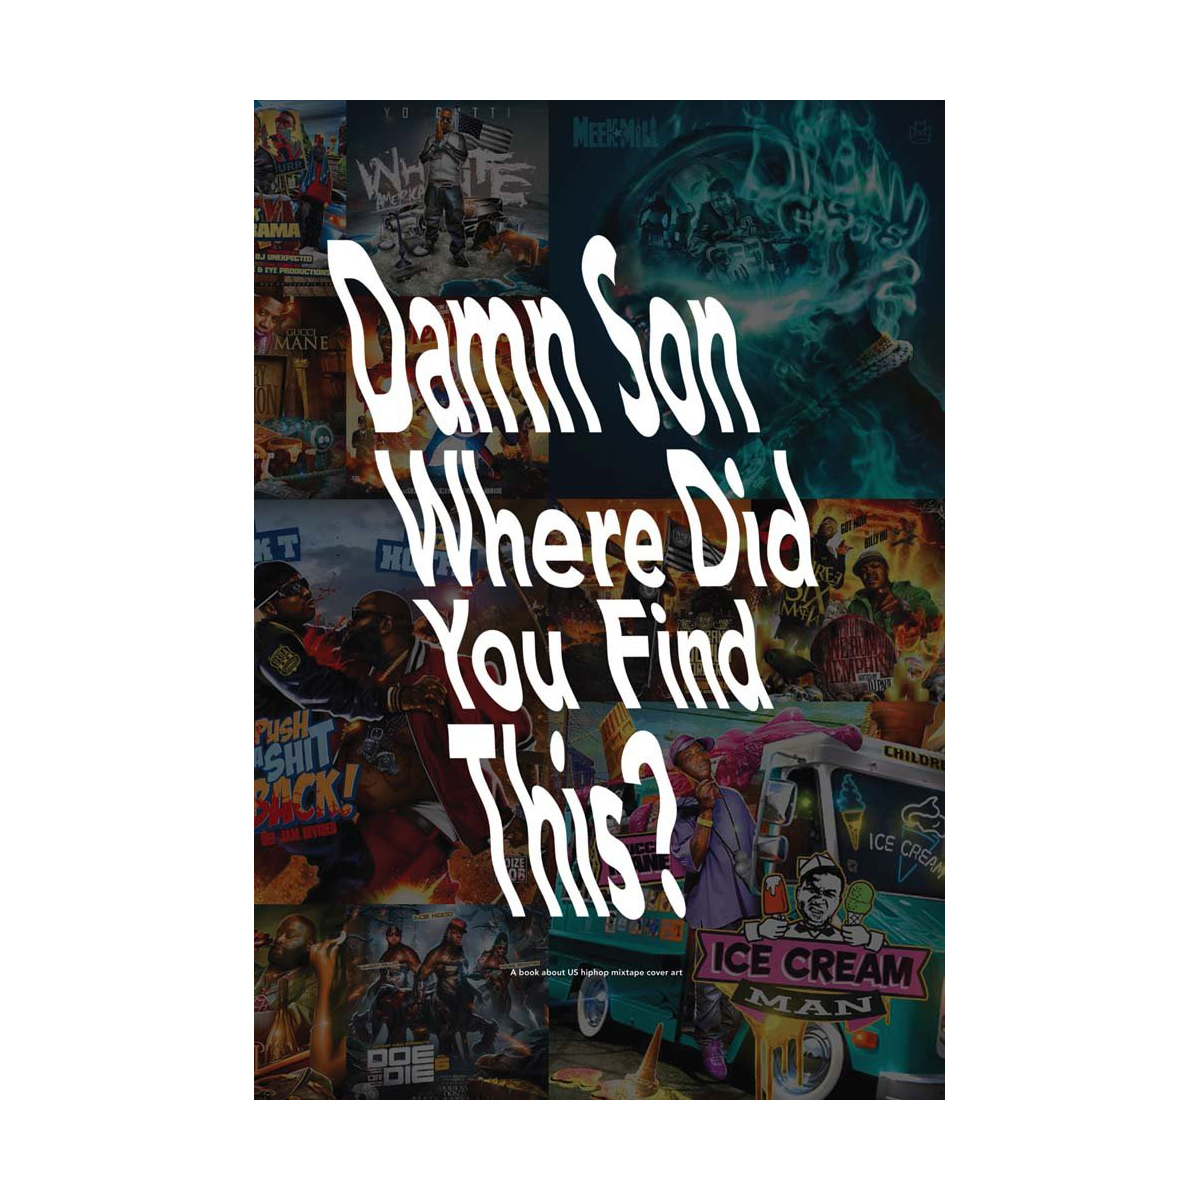 Damn Son Where Did You Find This?: A Book about US Hiphop Mixtape Cover Art